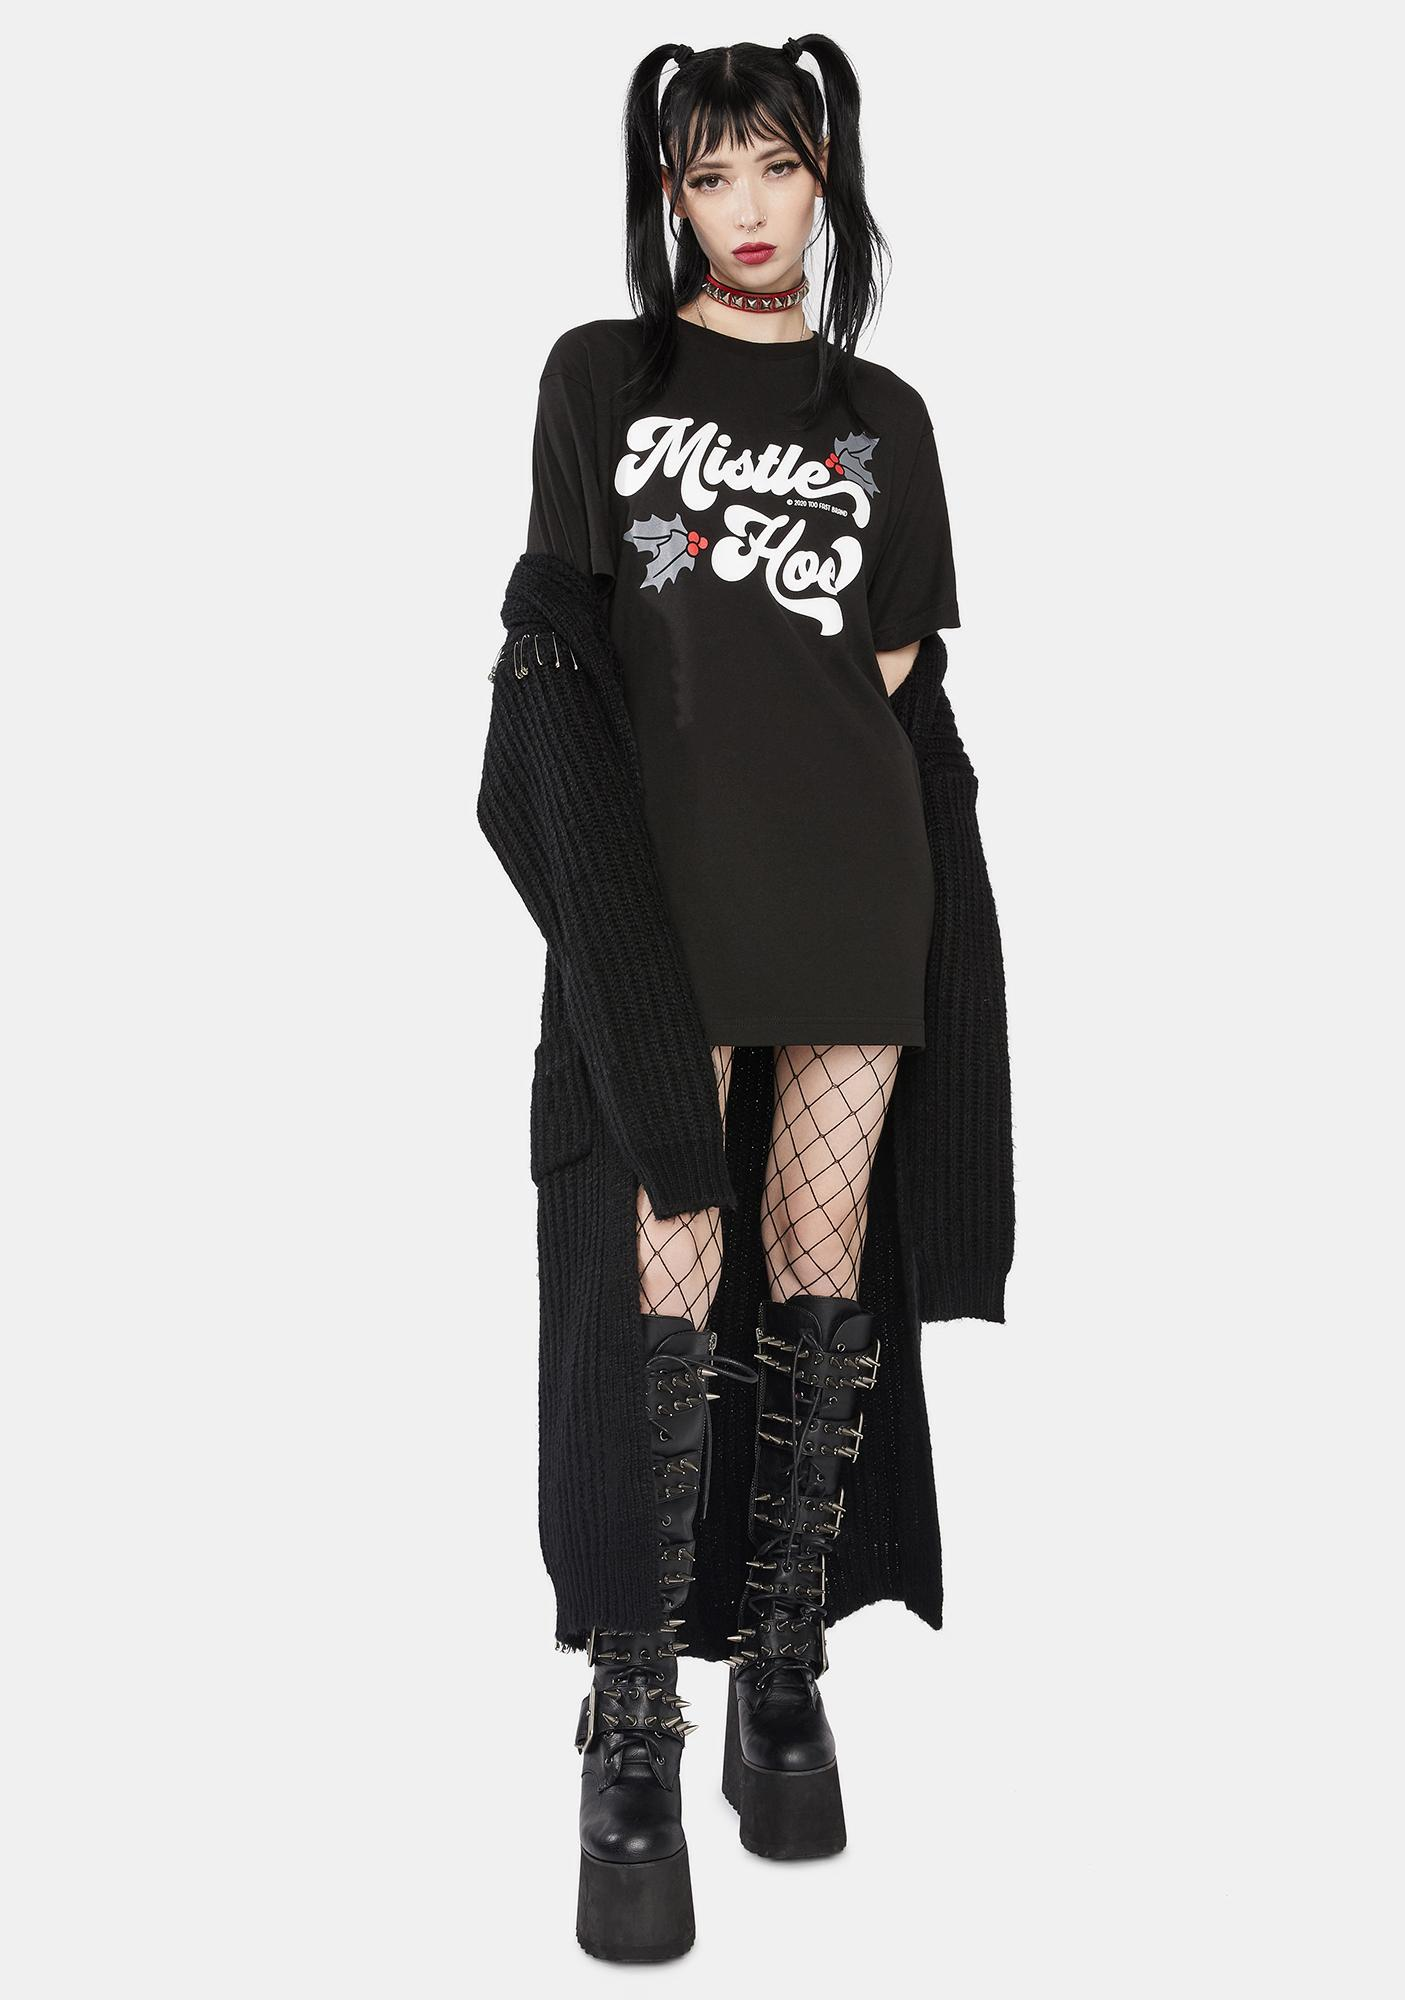 Too Fast Relaxed Fit Mistle Ho Graphic Tee